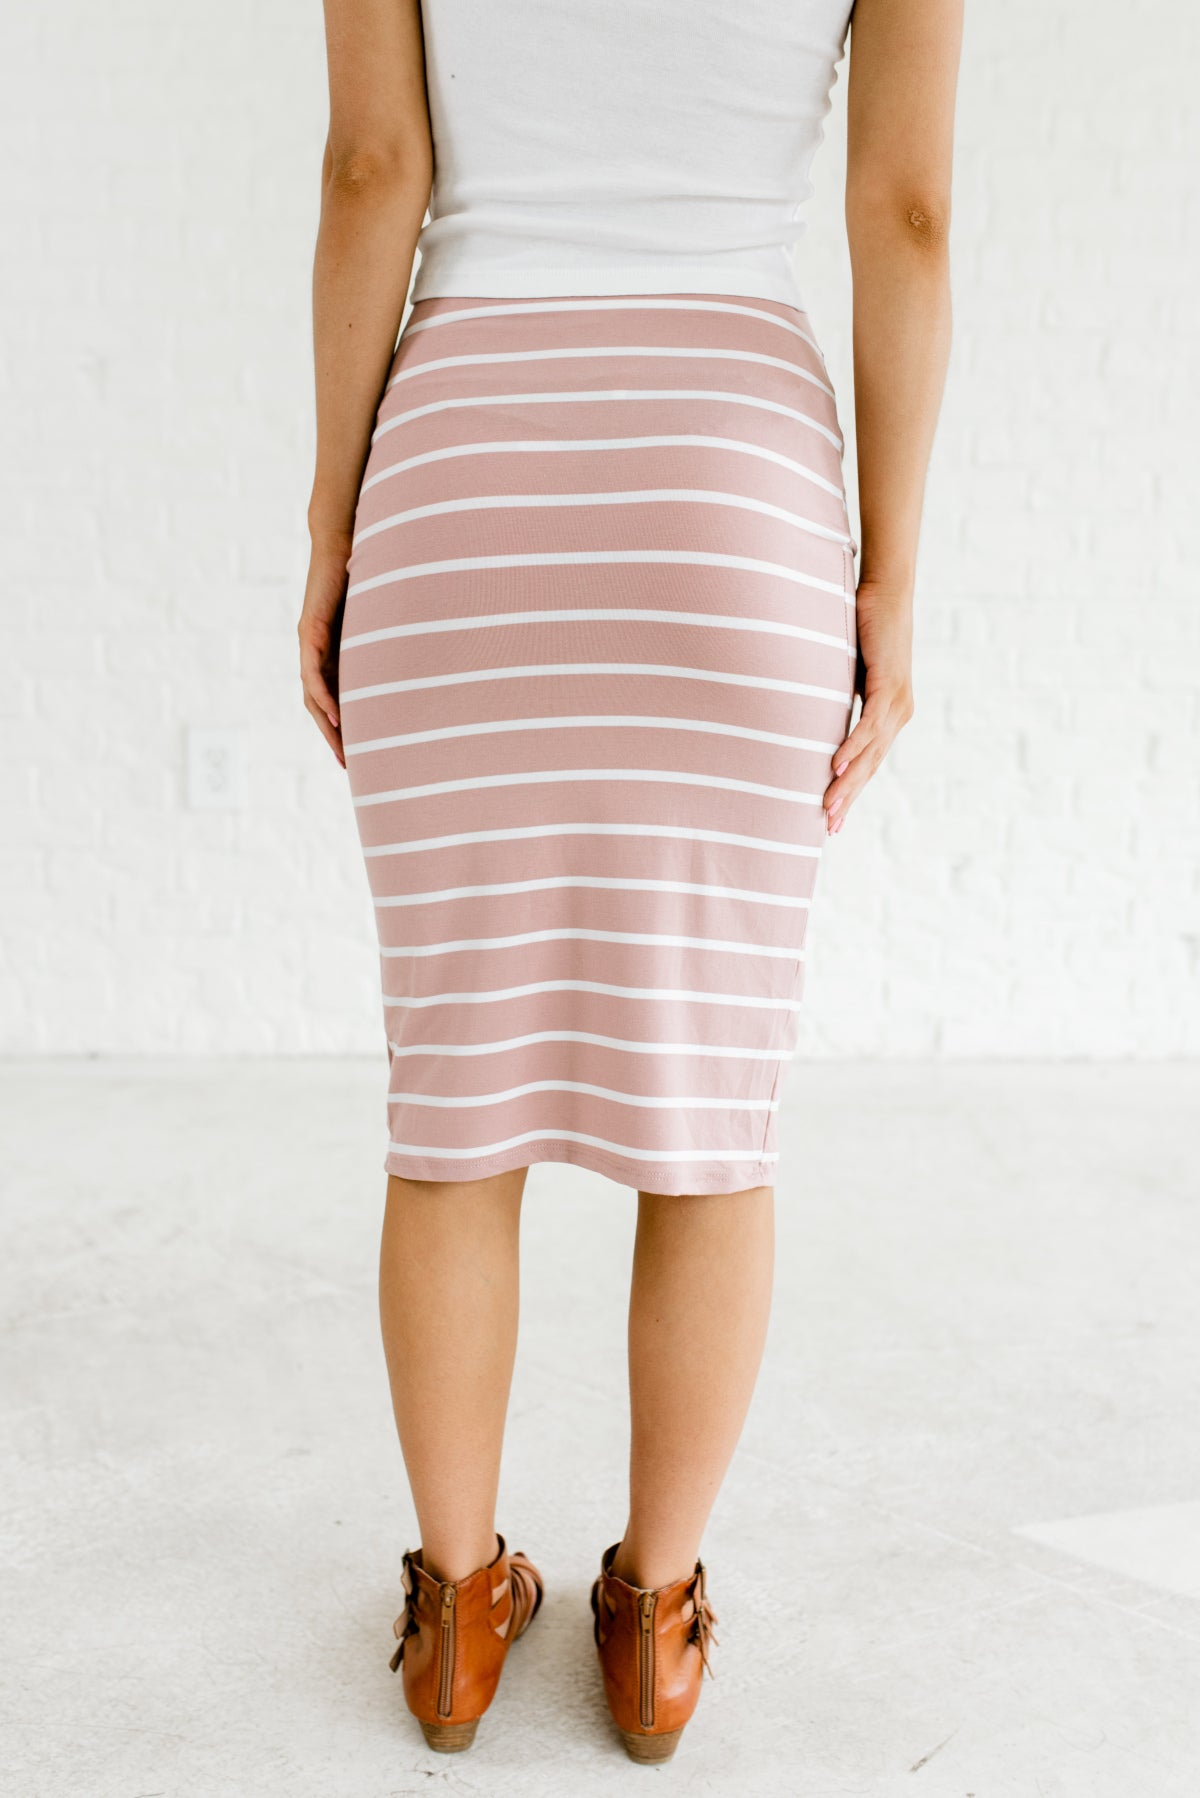 87e46cbc21 Light Mauve Pink and White Women's Pencil Style Boutique Skirt